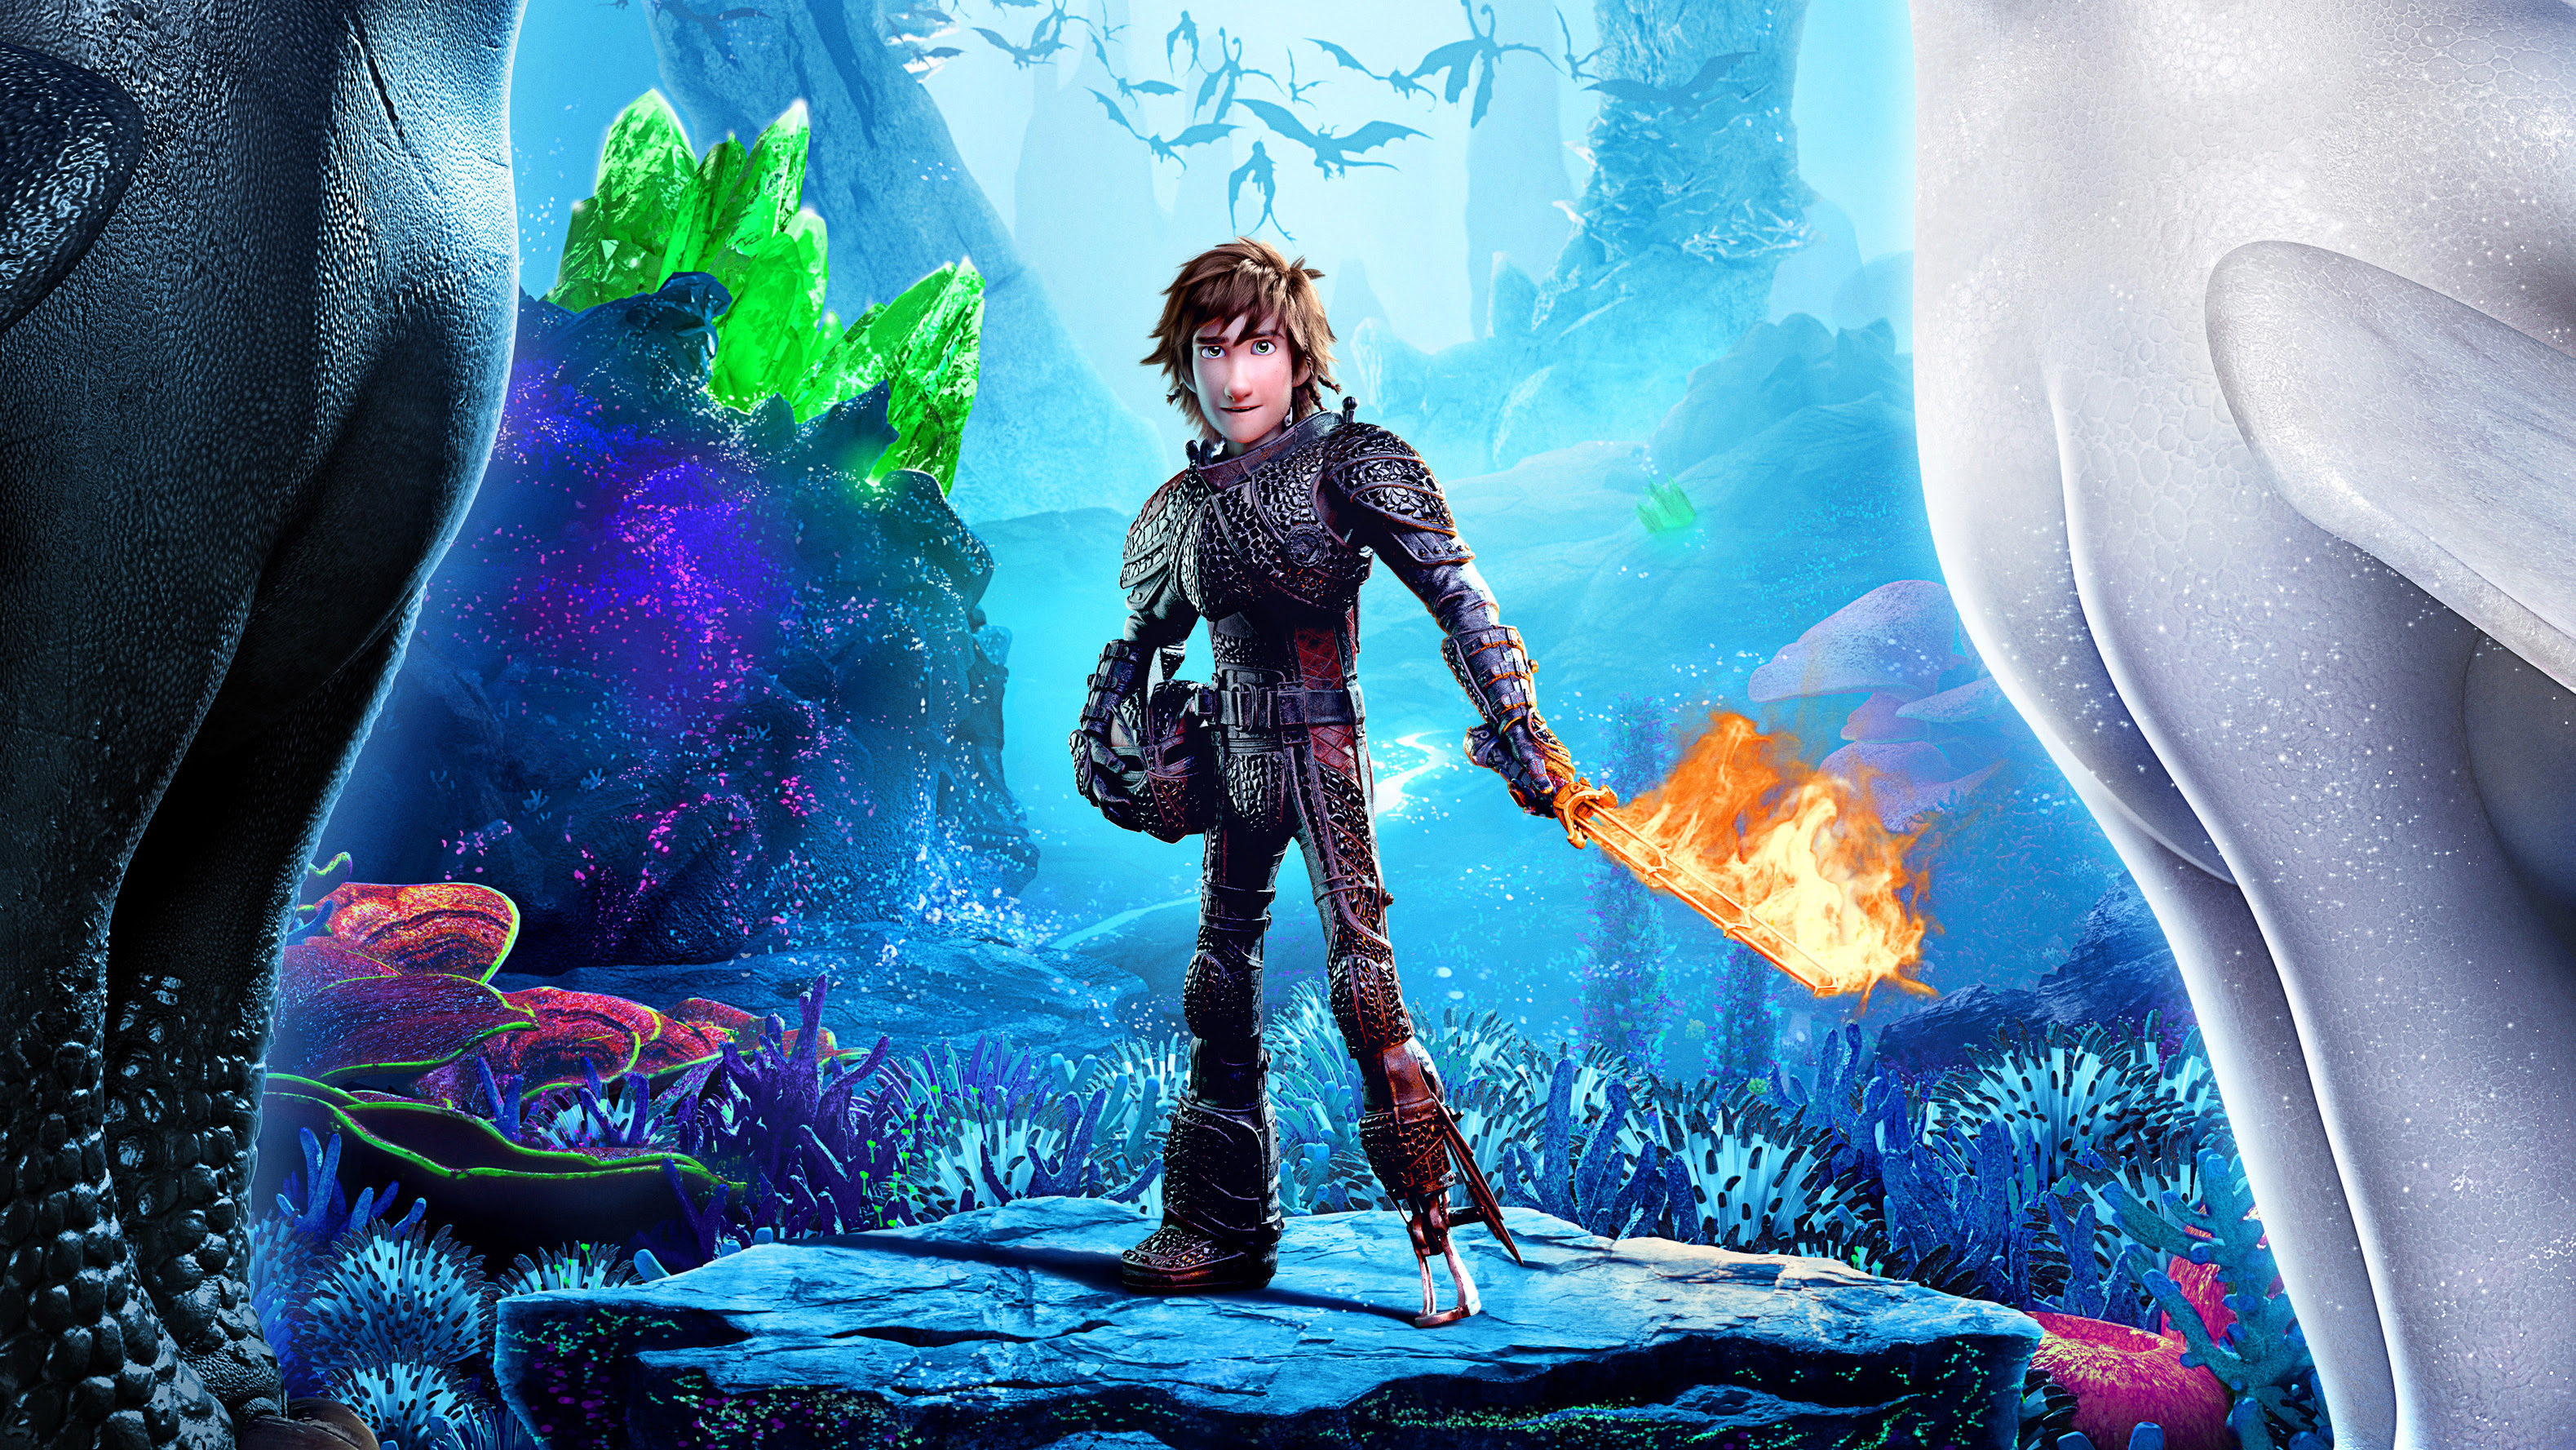 Hiccup How To Train Your Dragon 3 2019 4k Hd Movies 4k